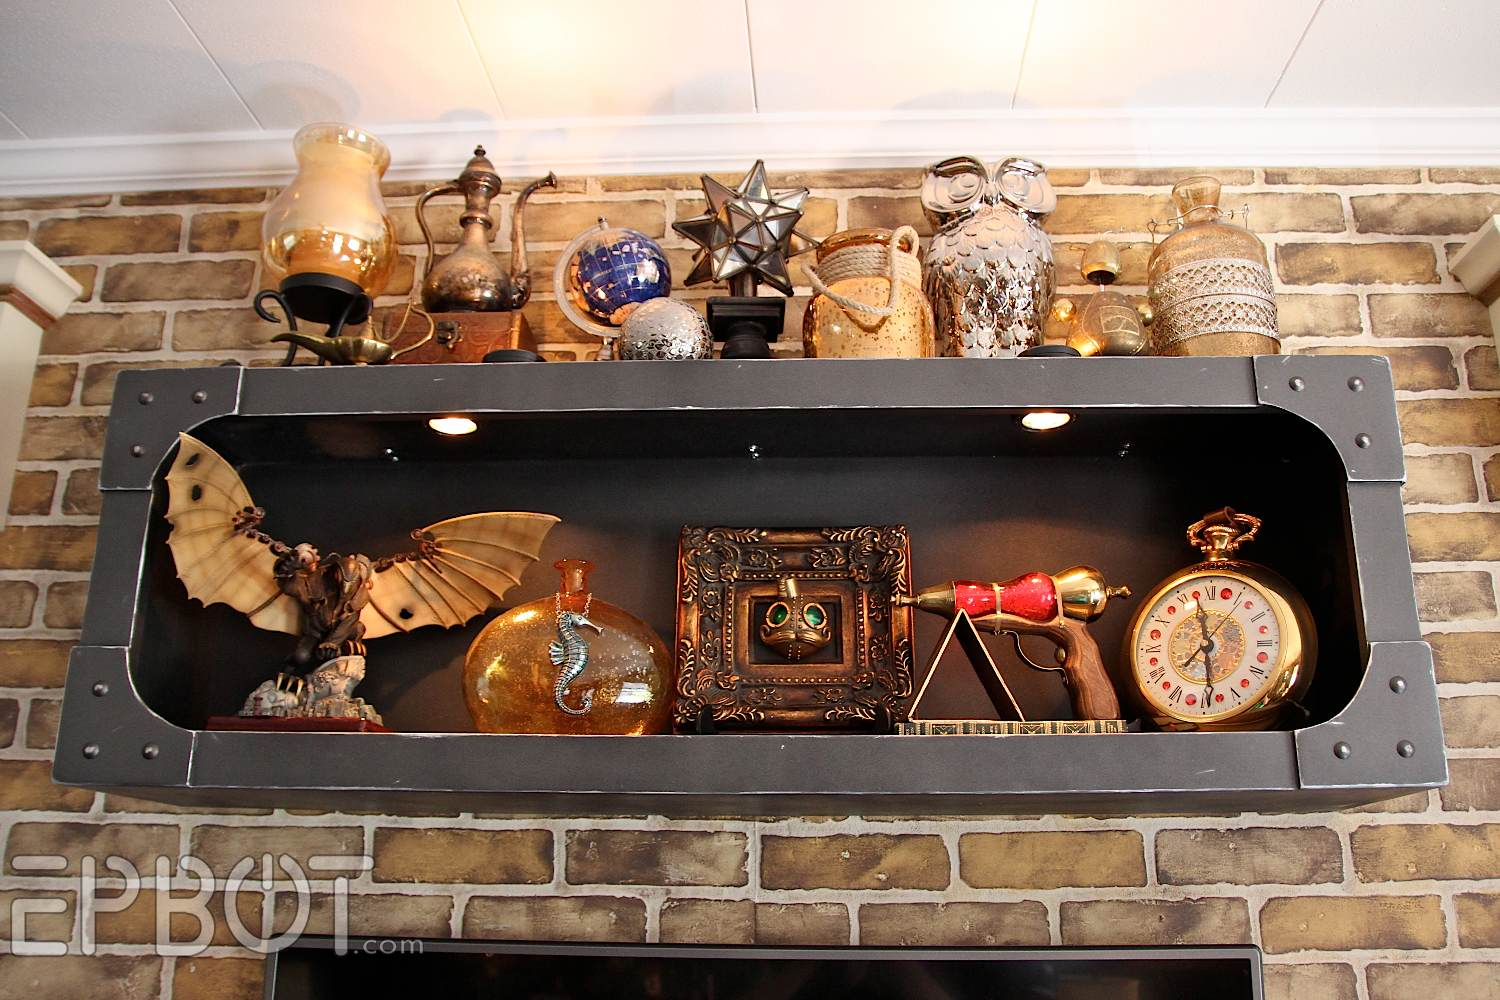 Steampunk Wall Shelves Epbot Finished Steampunk Tv Cabinet And Shelf Reveal